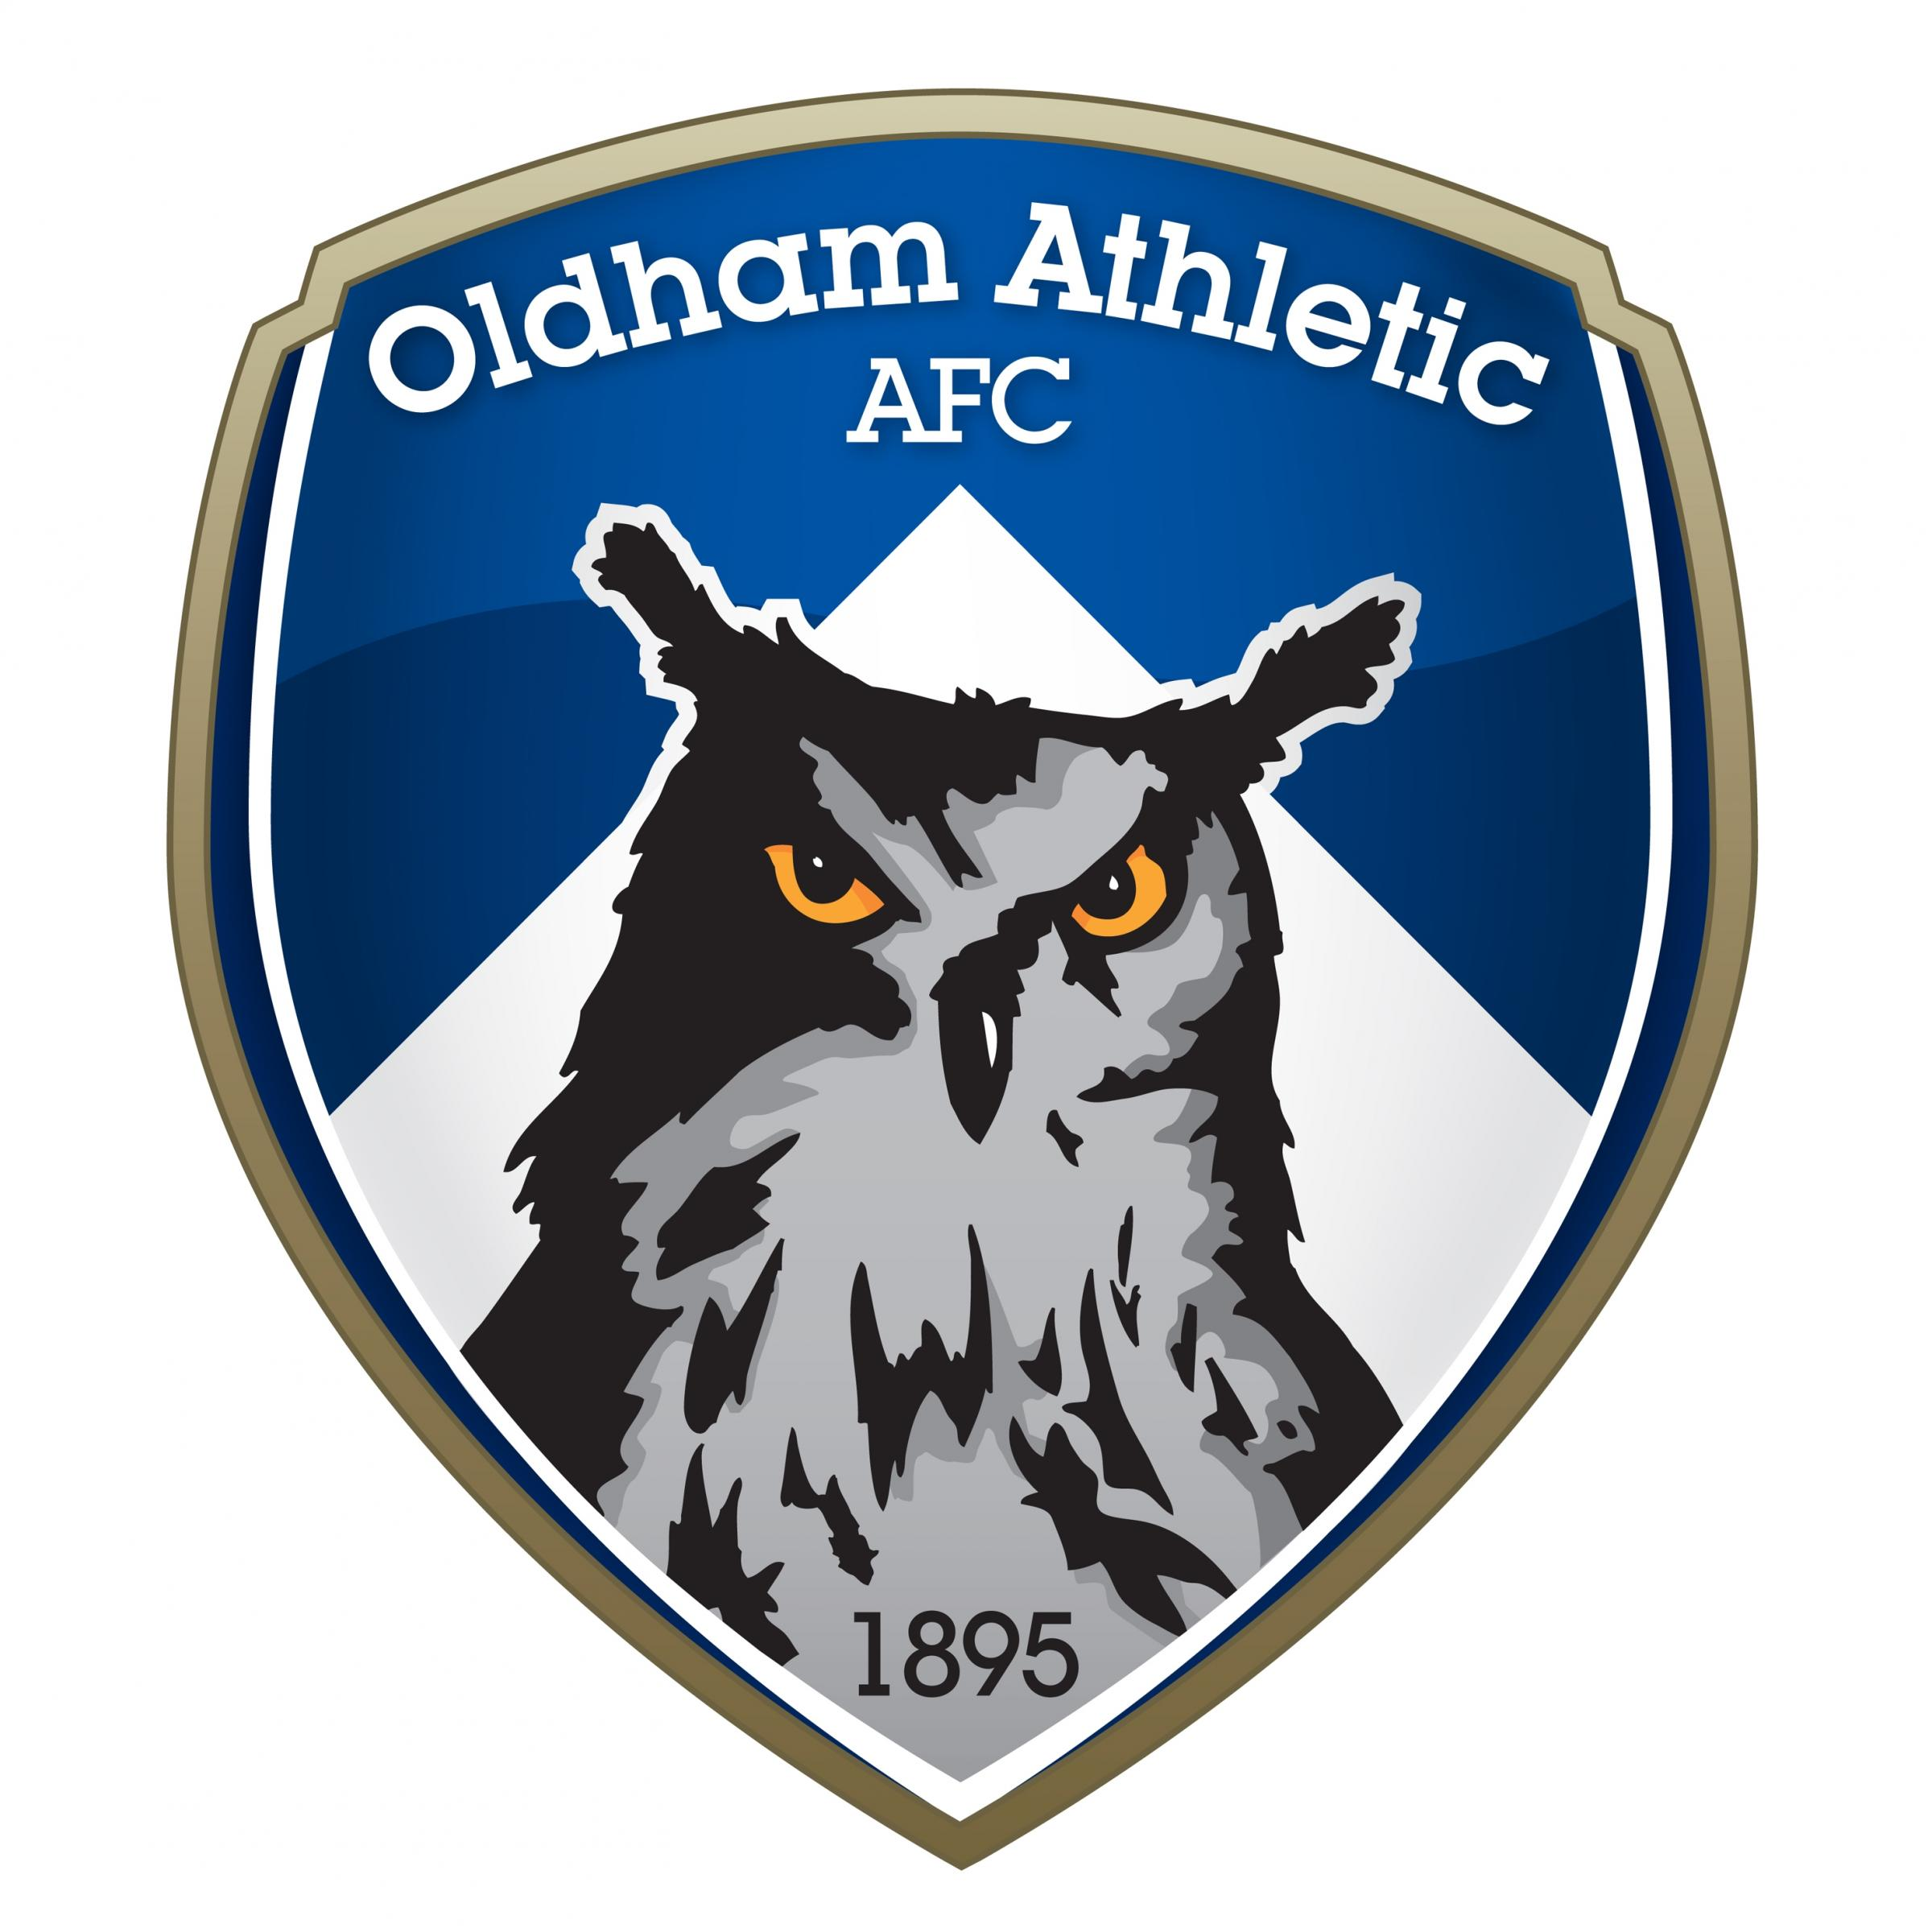 OPPOSITION INSIGHT: Oldham Athletic